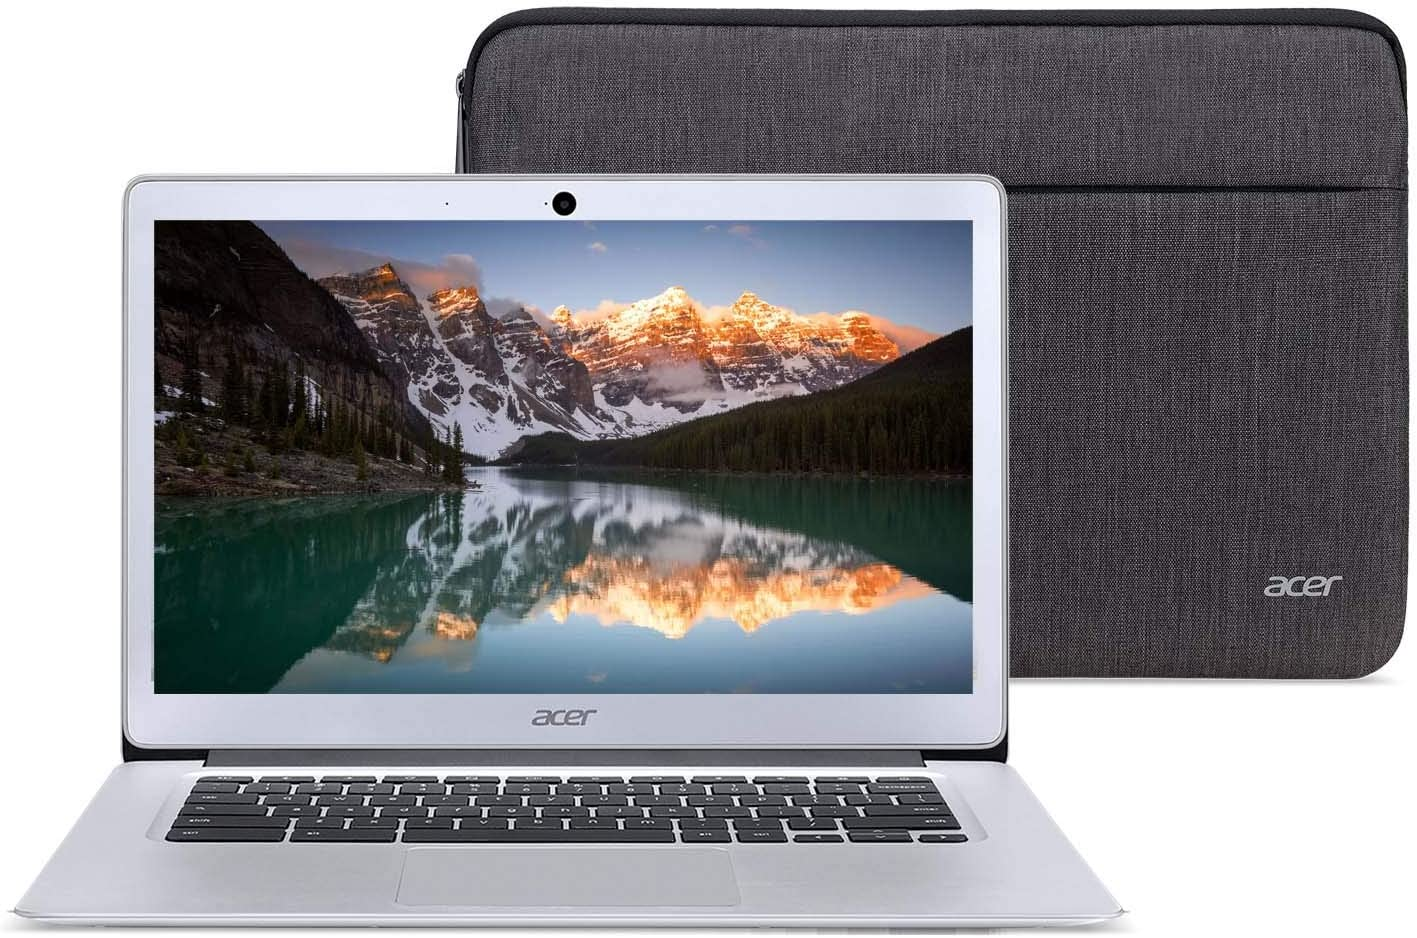 Acer Chromebook 14 Laptop Bundle Intel Quad Core E8000 up to 2GHz 4GB RAM 32GB eMMC 14inch LCD HDMI Web Cam (Renewed) (Bundle with Case)